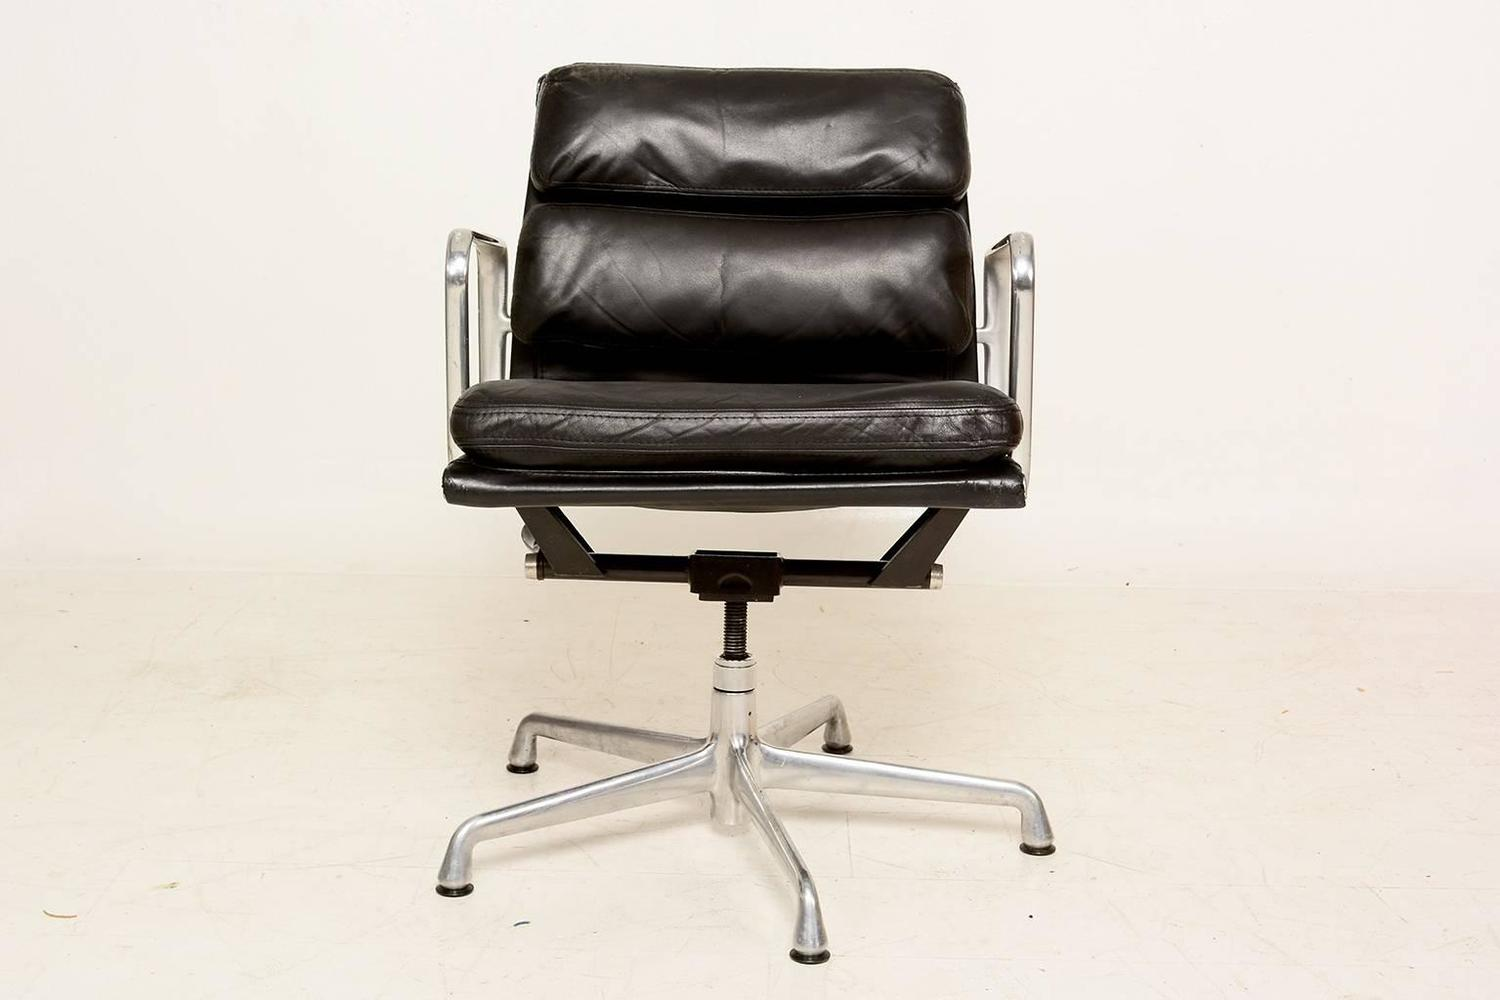 Vintage herman miller eames soft pad aluminum group chair for sale at 1stdibs - Vintage herman miller ...